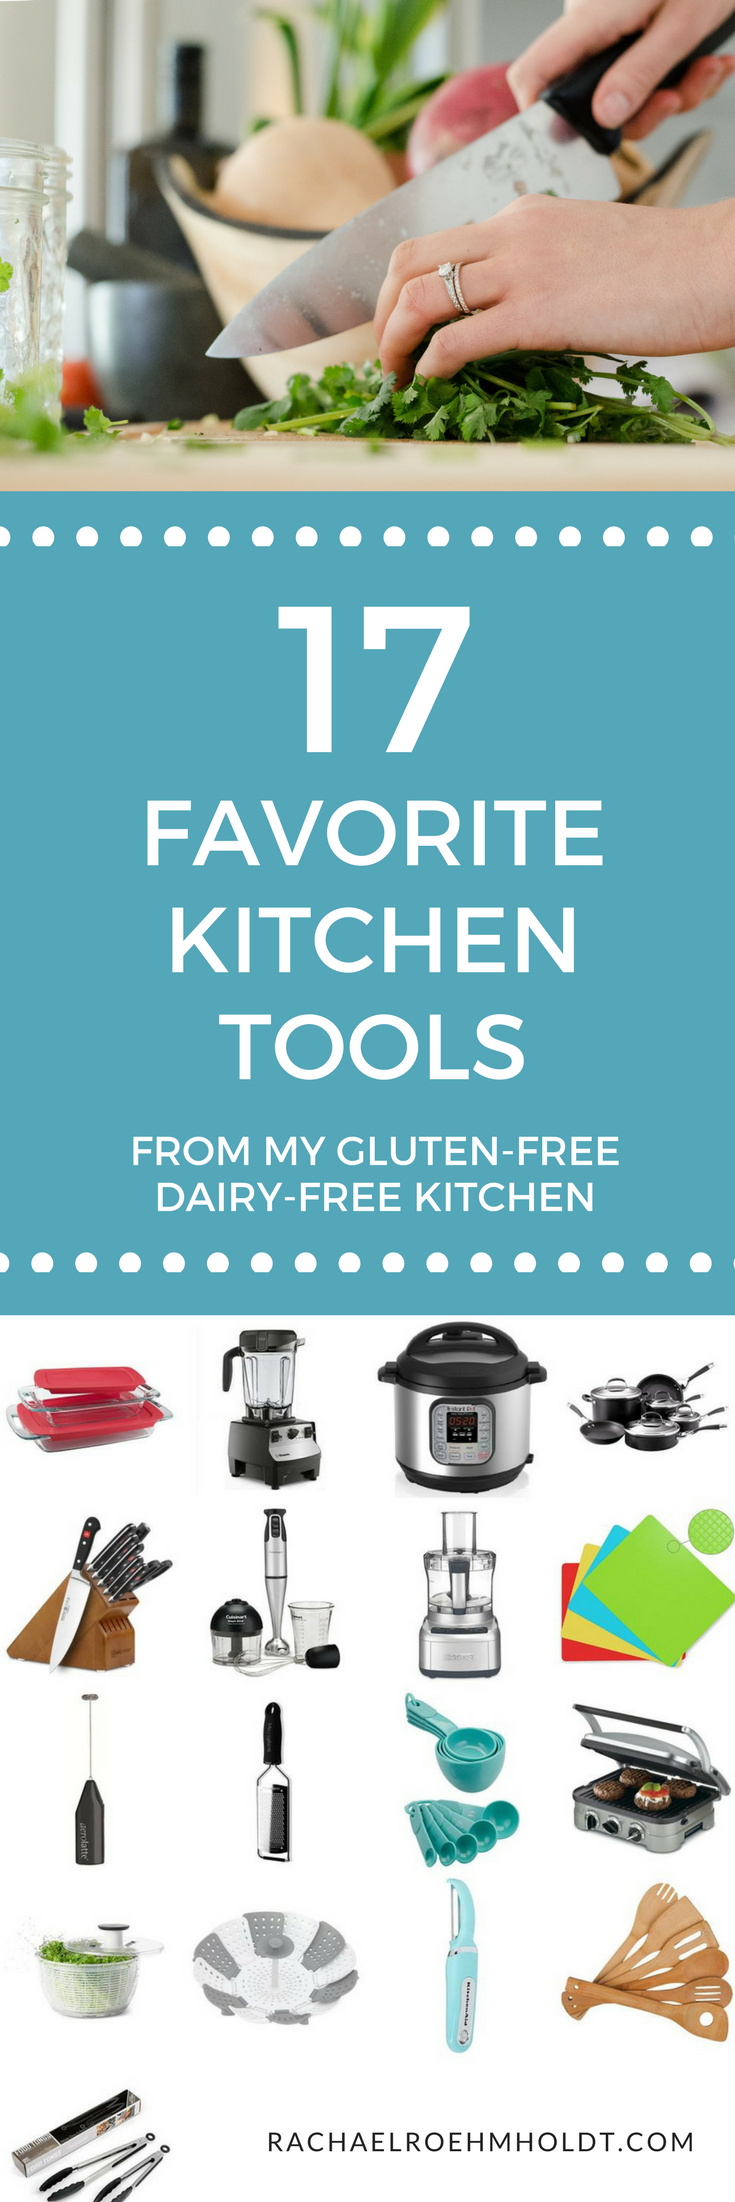 I've rounded up 17 of my all-time favorite kitchen tools from my gluten-free dairy-free kitchen. Click through to check out this list and grab some new upgrades to your tools too!